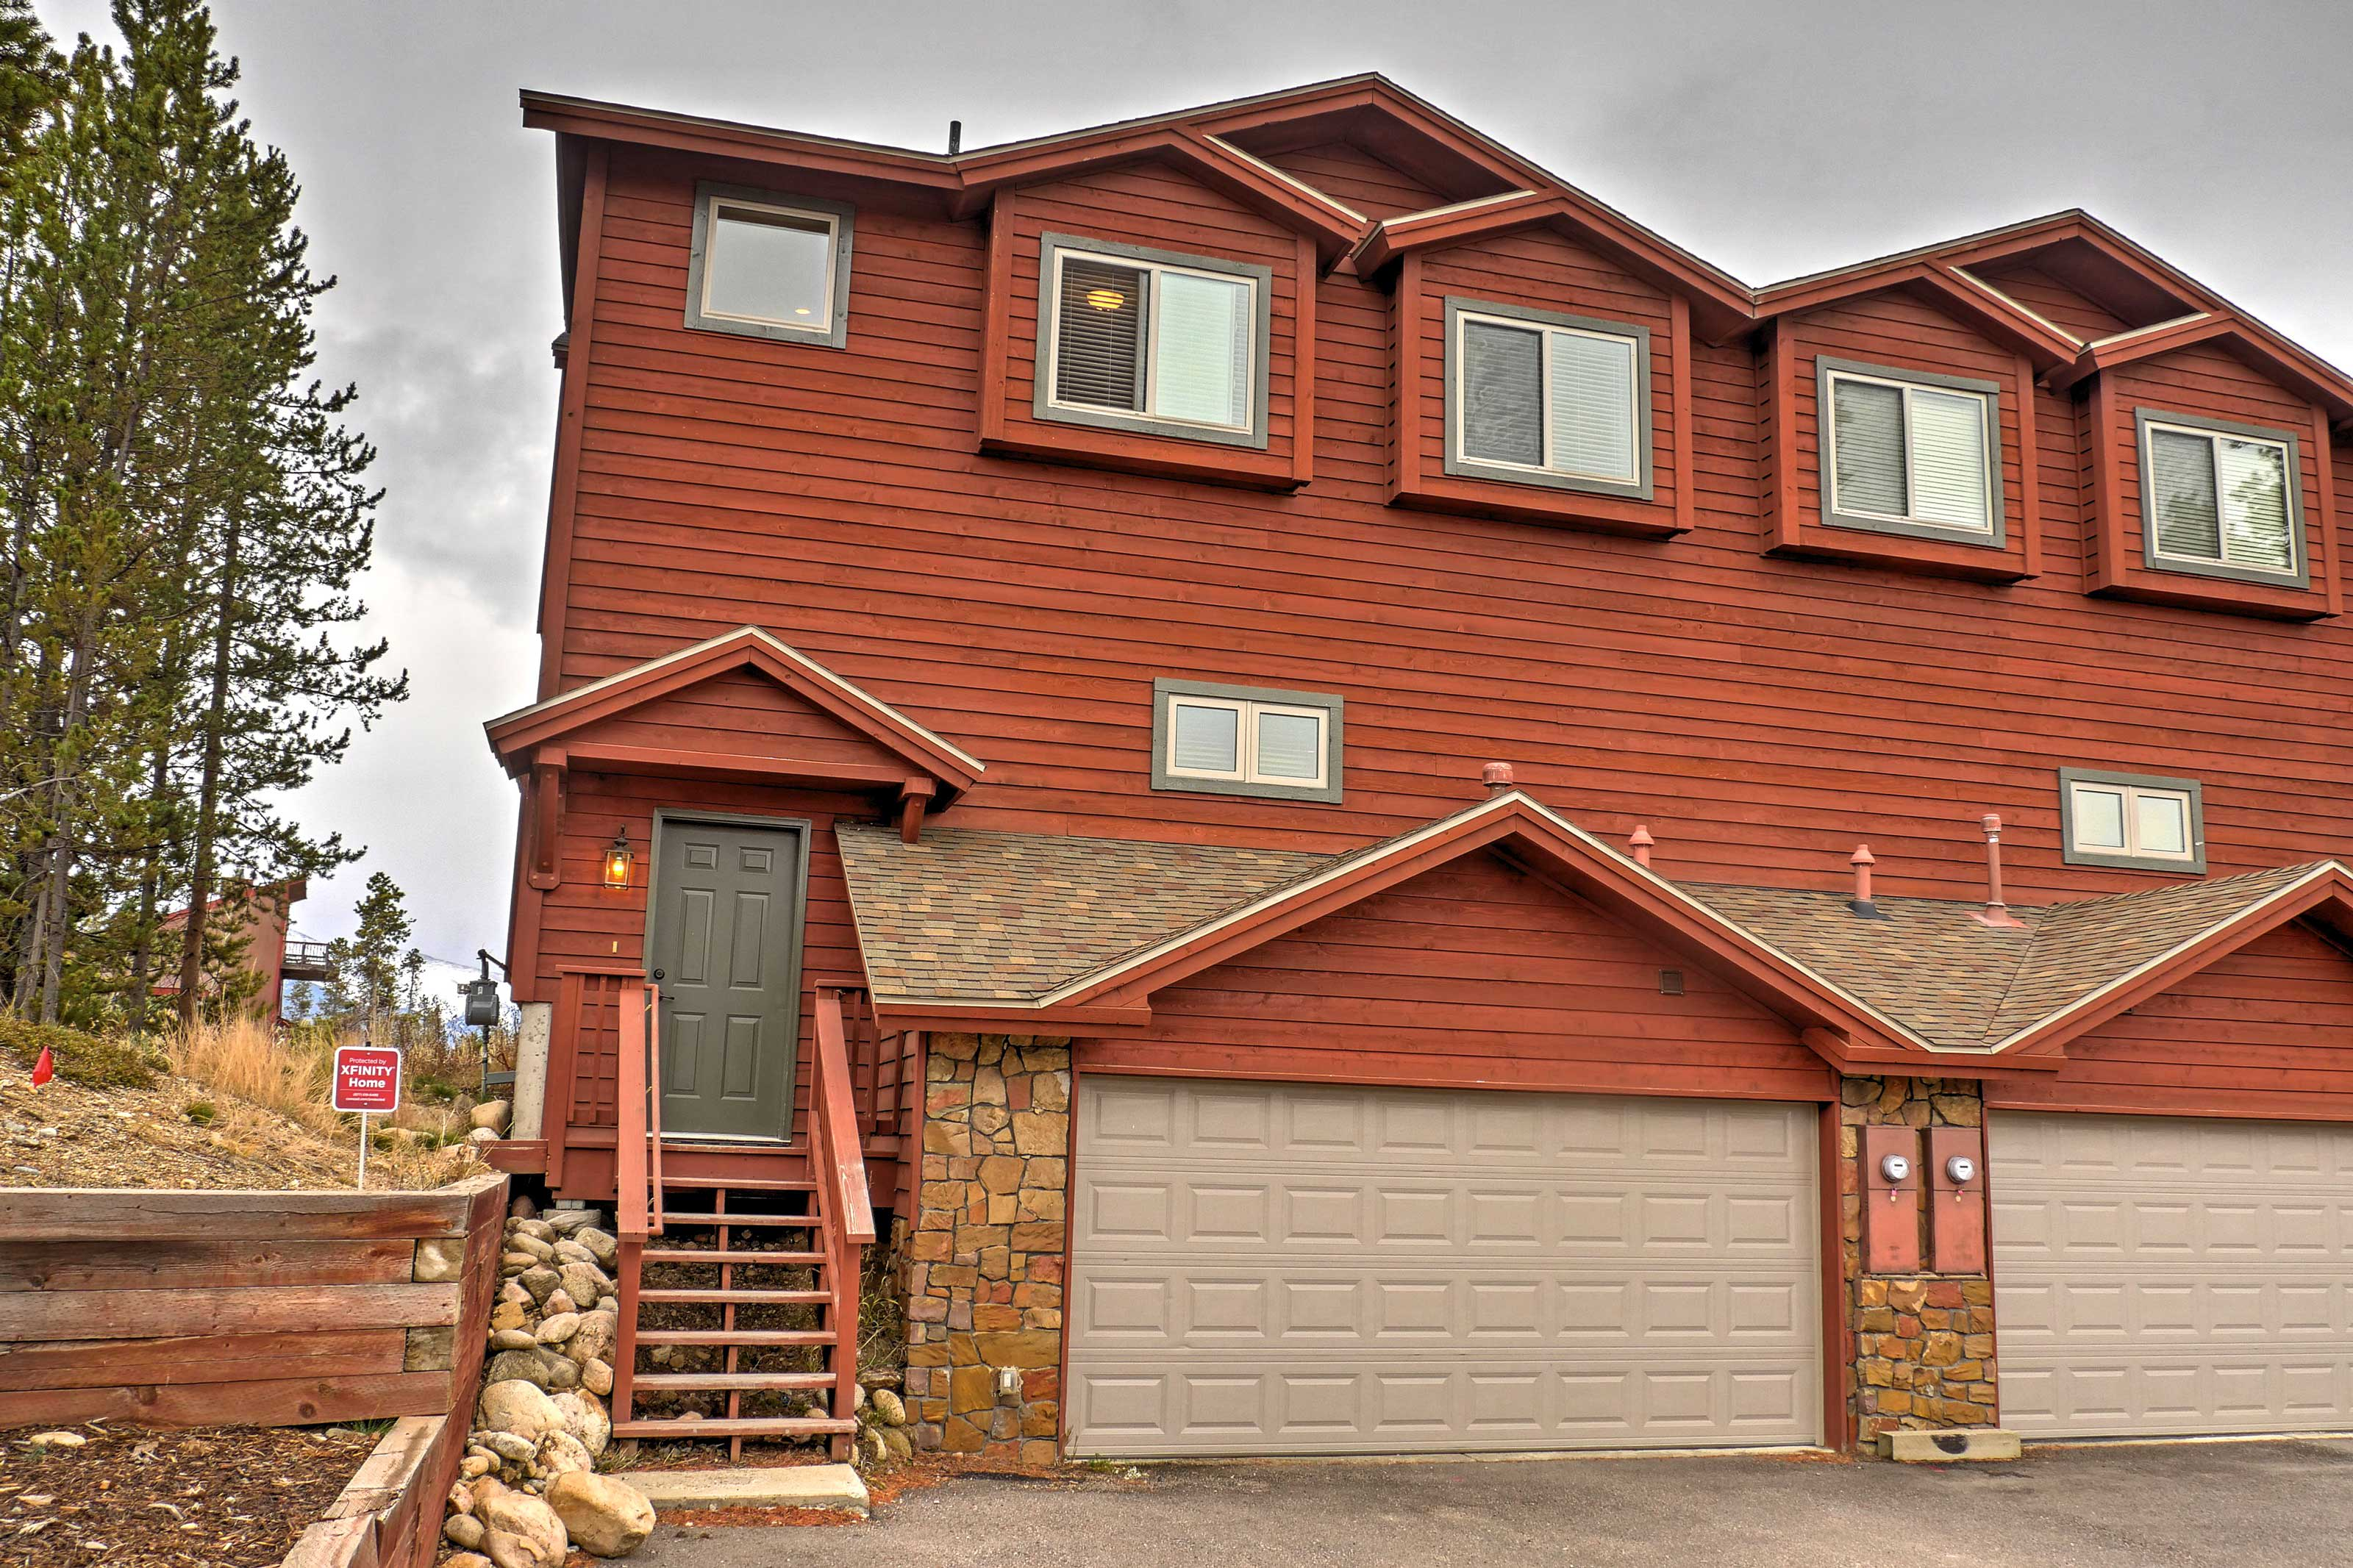 You're sure to have a relaxing mountain retreat when you book this scenic Fraser vacation rental townhome!